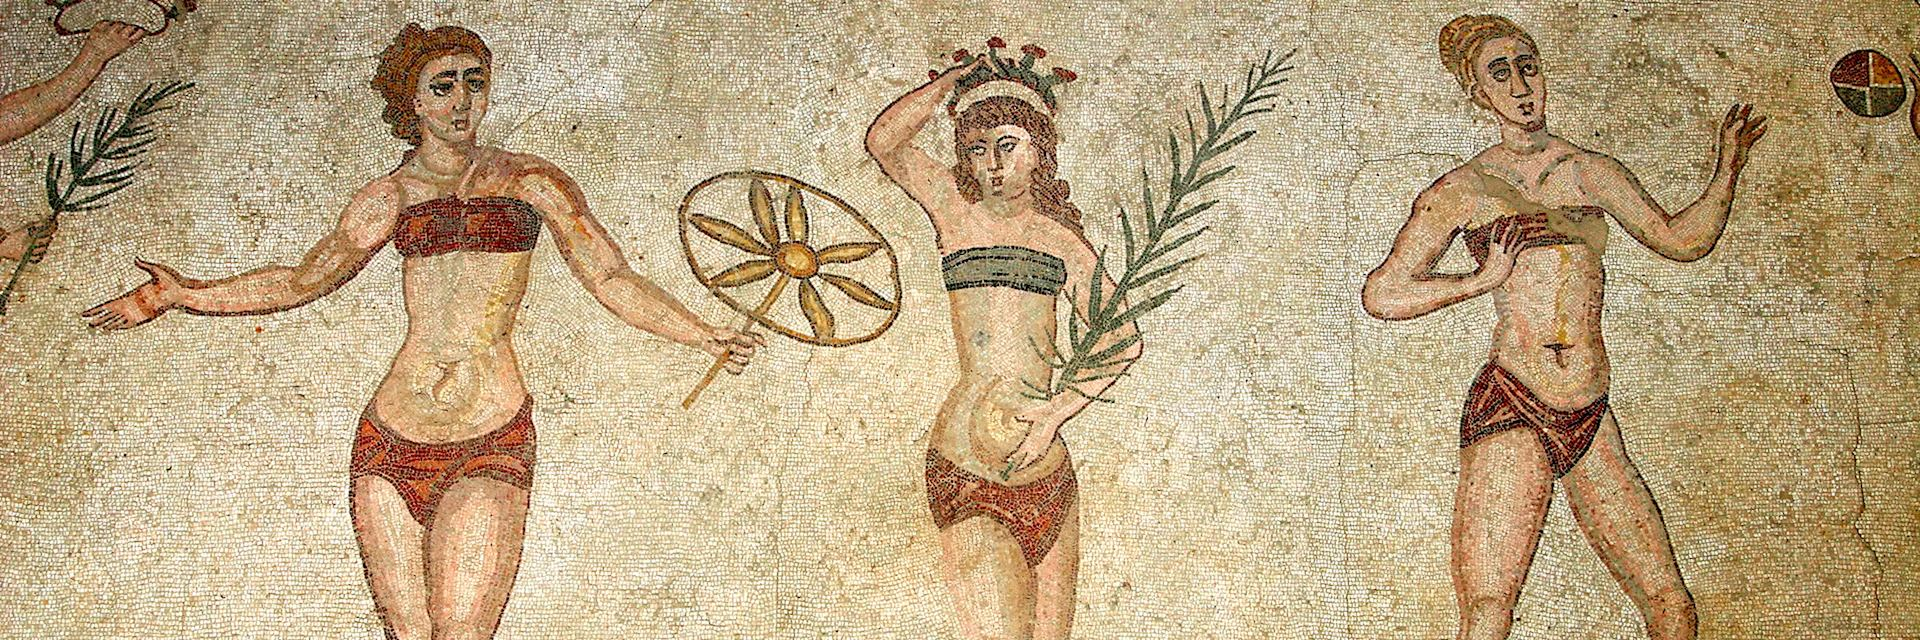 Roman mosaic of women in bikinis, Villa Romana Casale